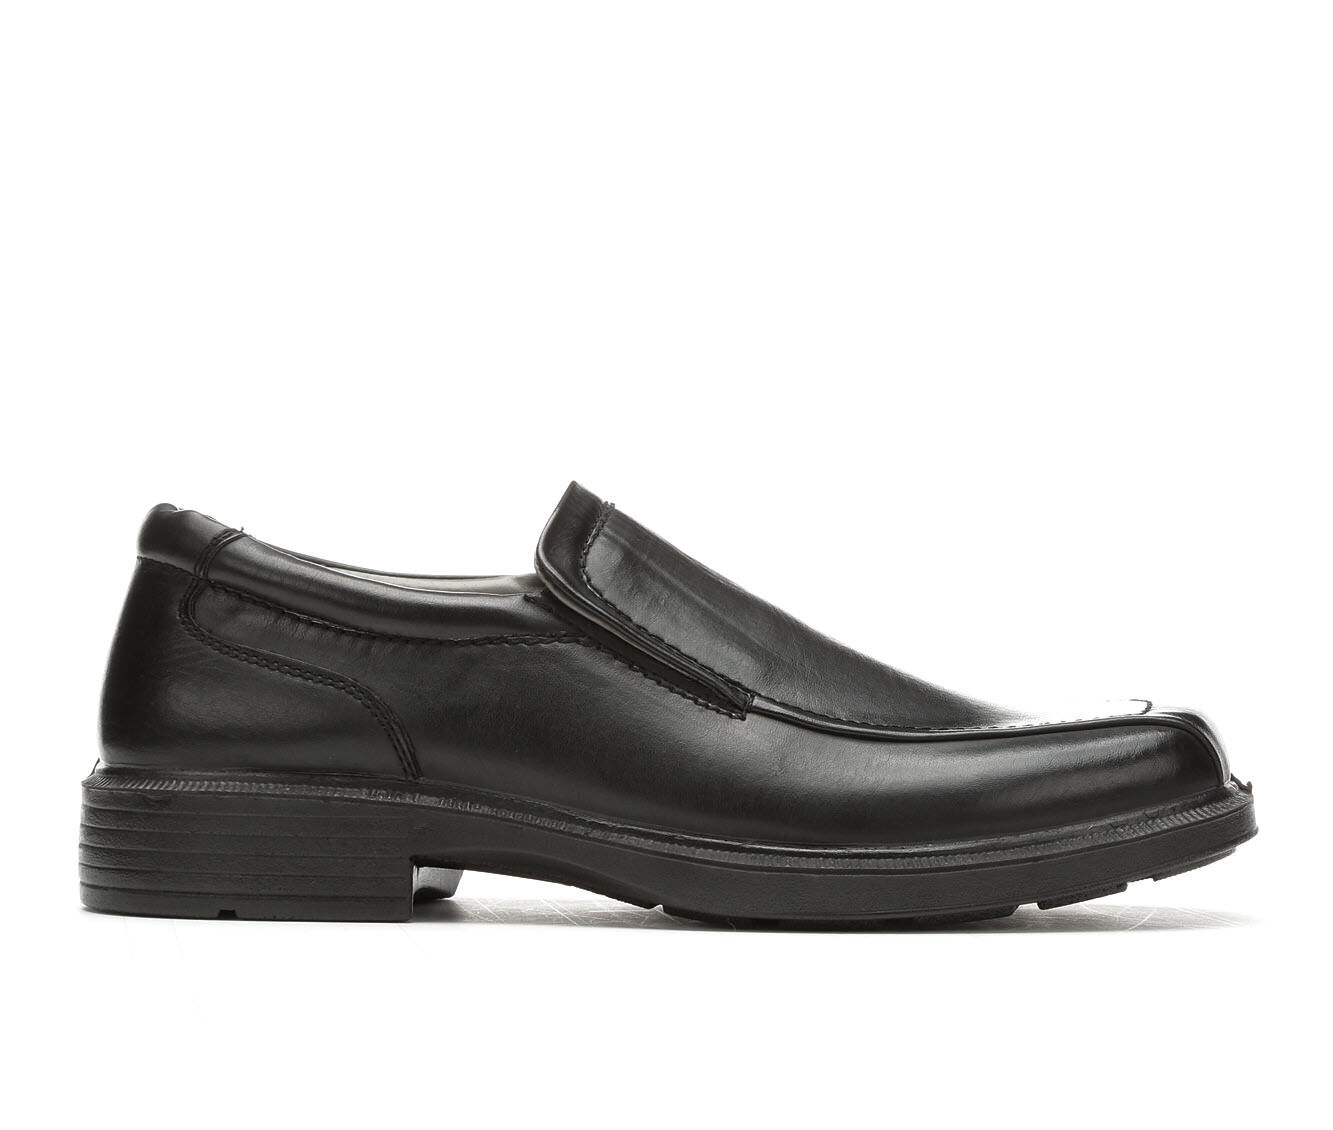 Men's Deer Stags Greenpoint Dress Shoes Black